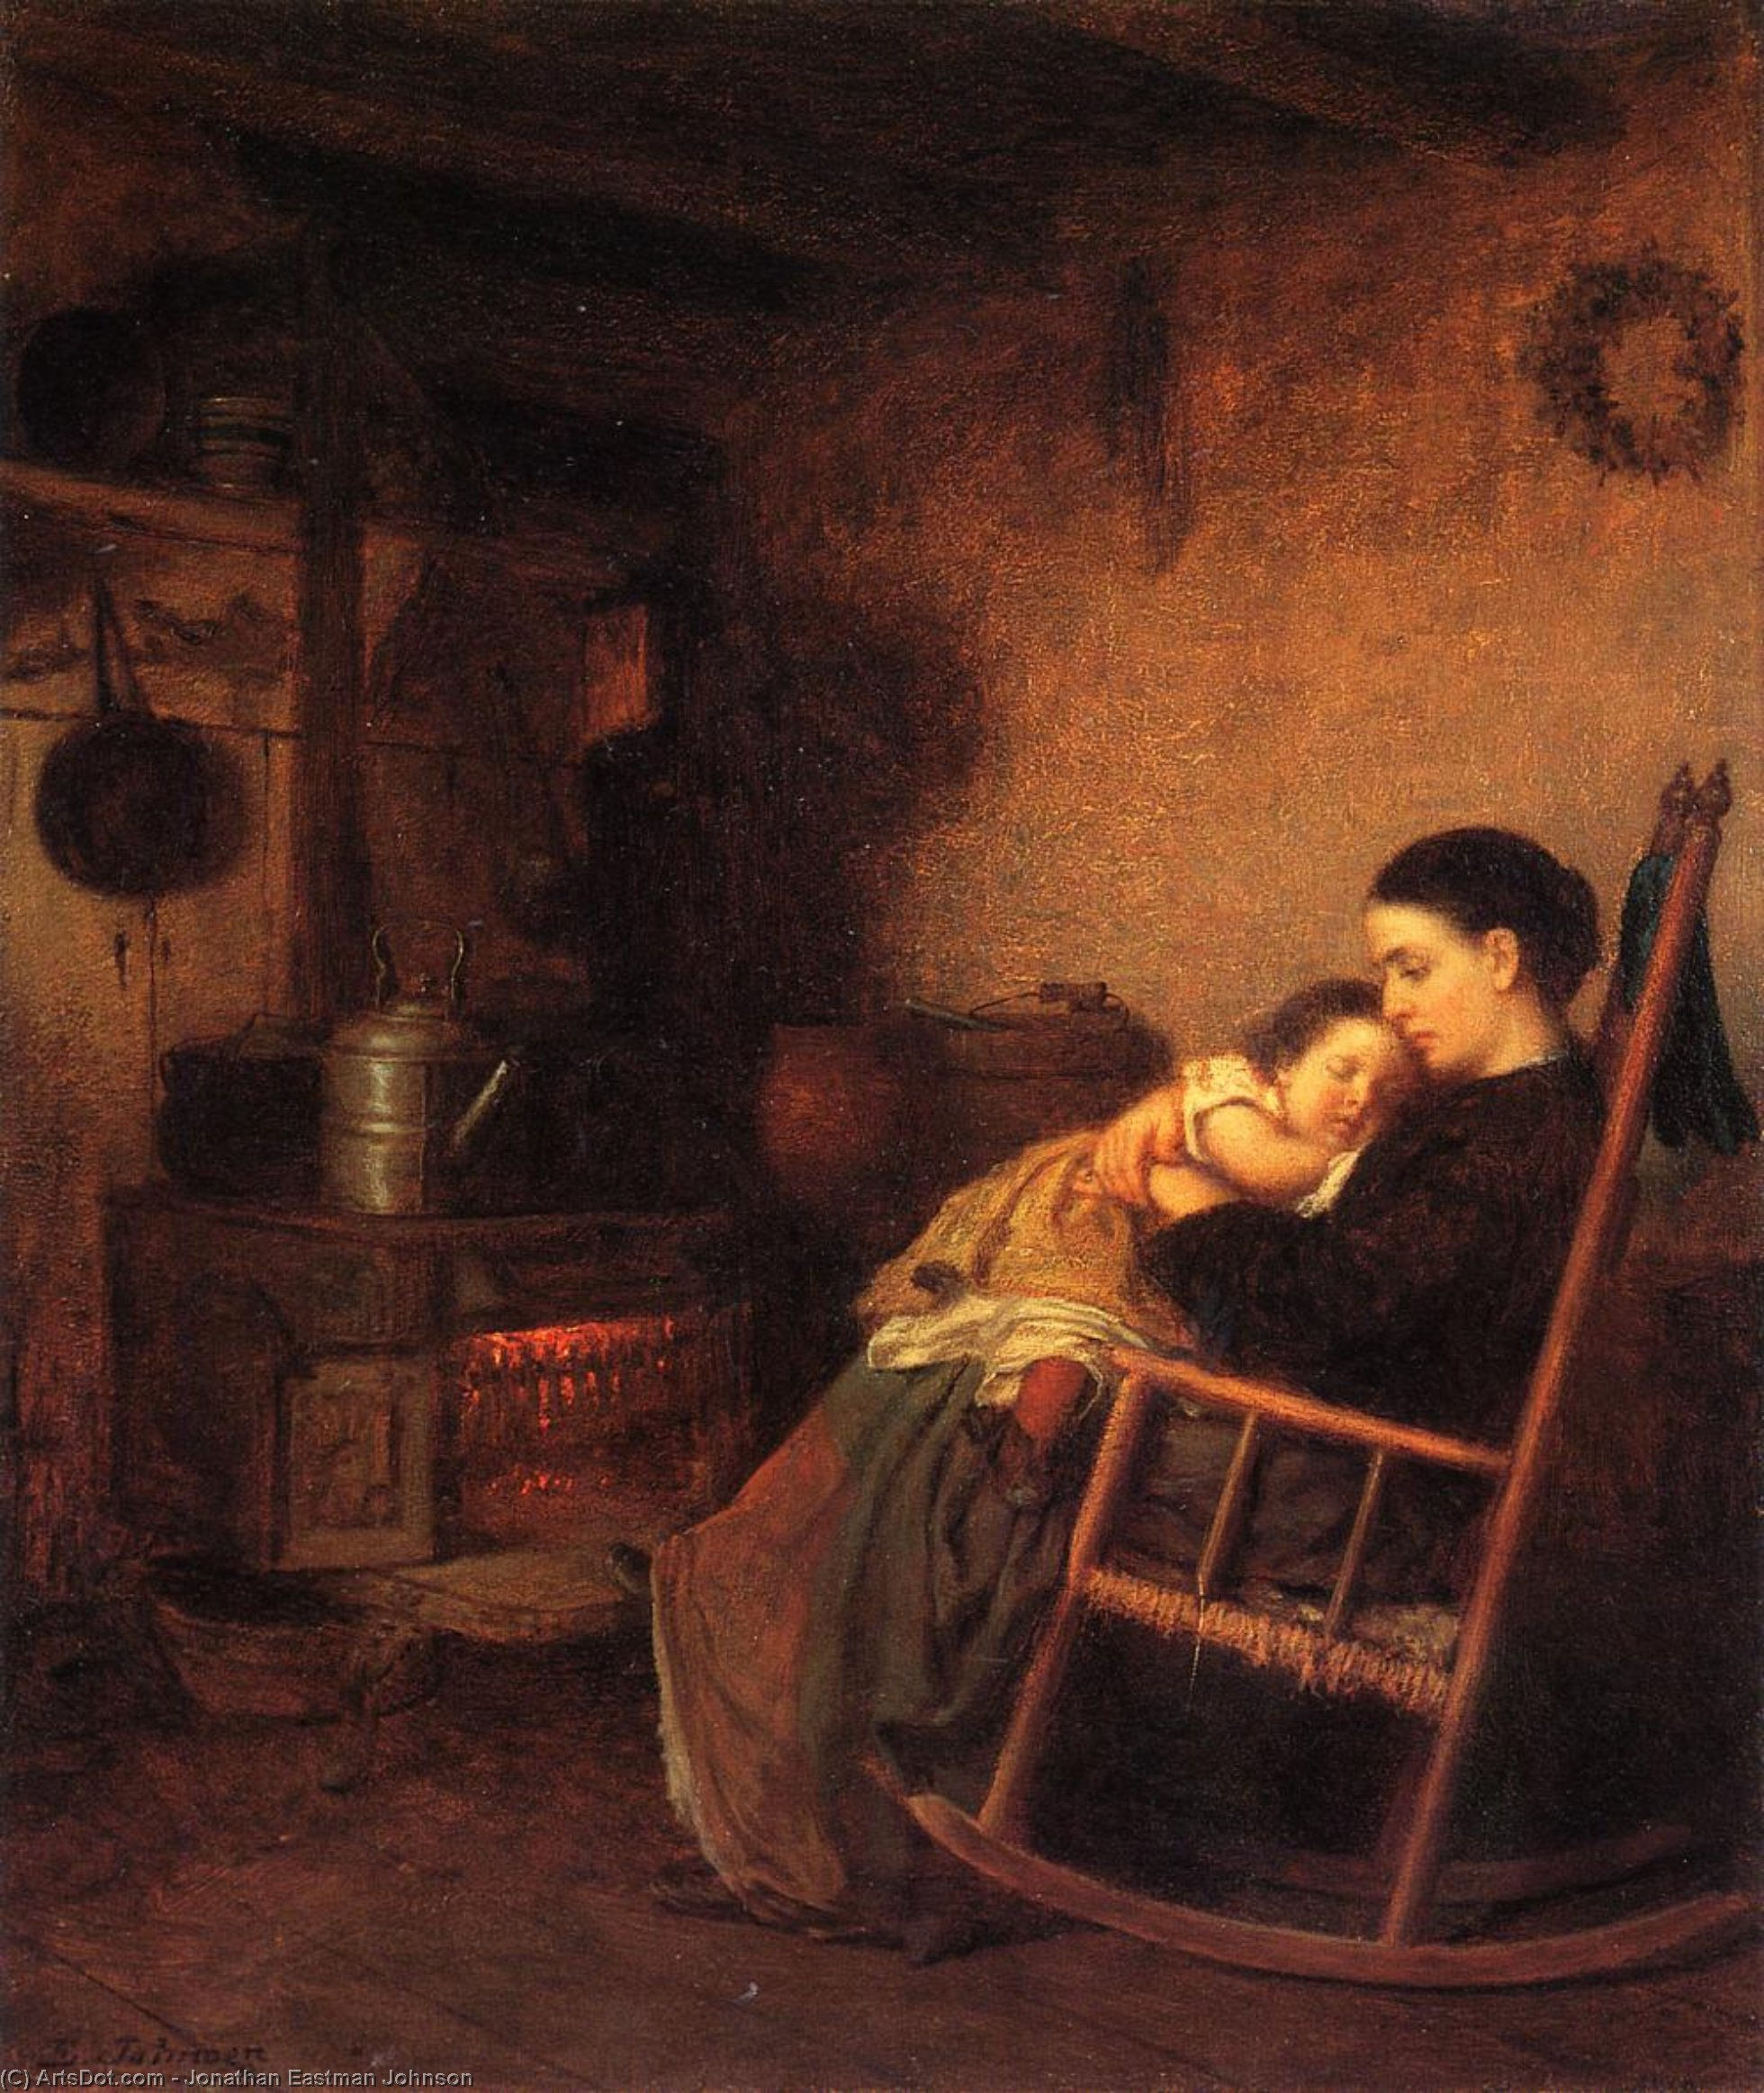 mutter und kind von Jonathan Eastman Johnson (1824-1906, United Kingdom) | Malerei Kopie | ArtsDot.com